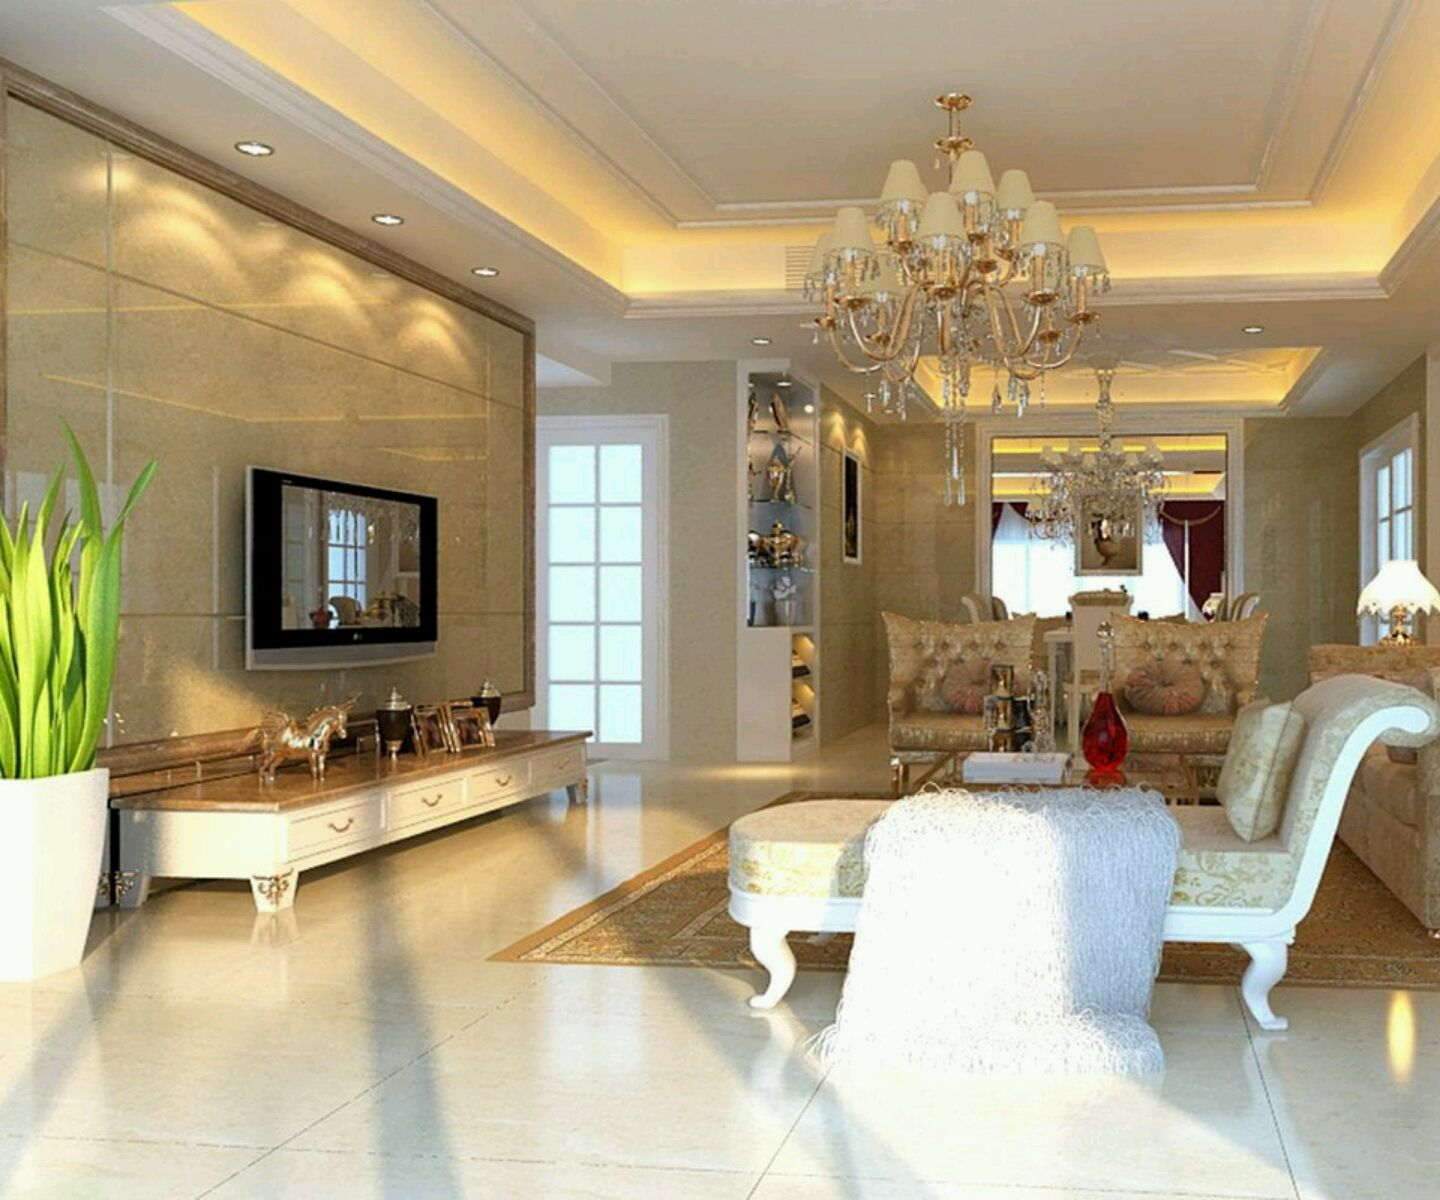 Luxury Home Interior Designs Plans Luxury Home Interior Designers22 Stunning Interior Design Ideas .